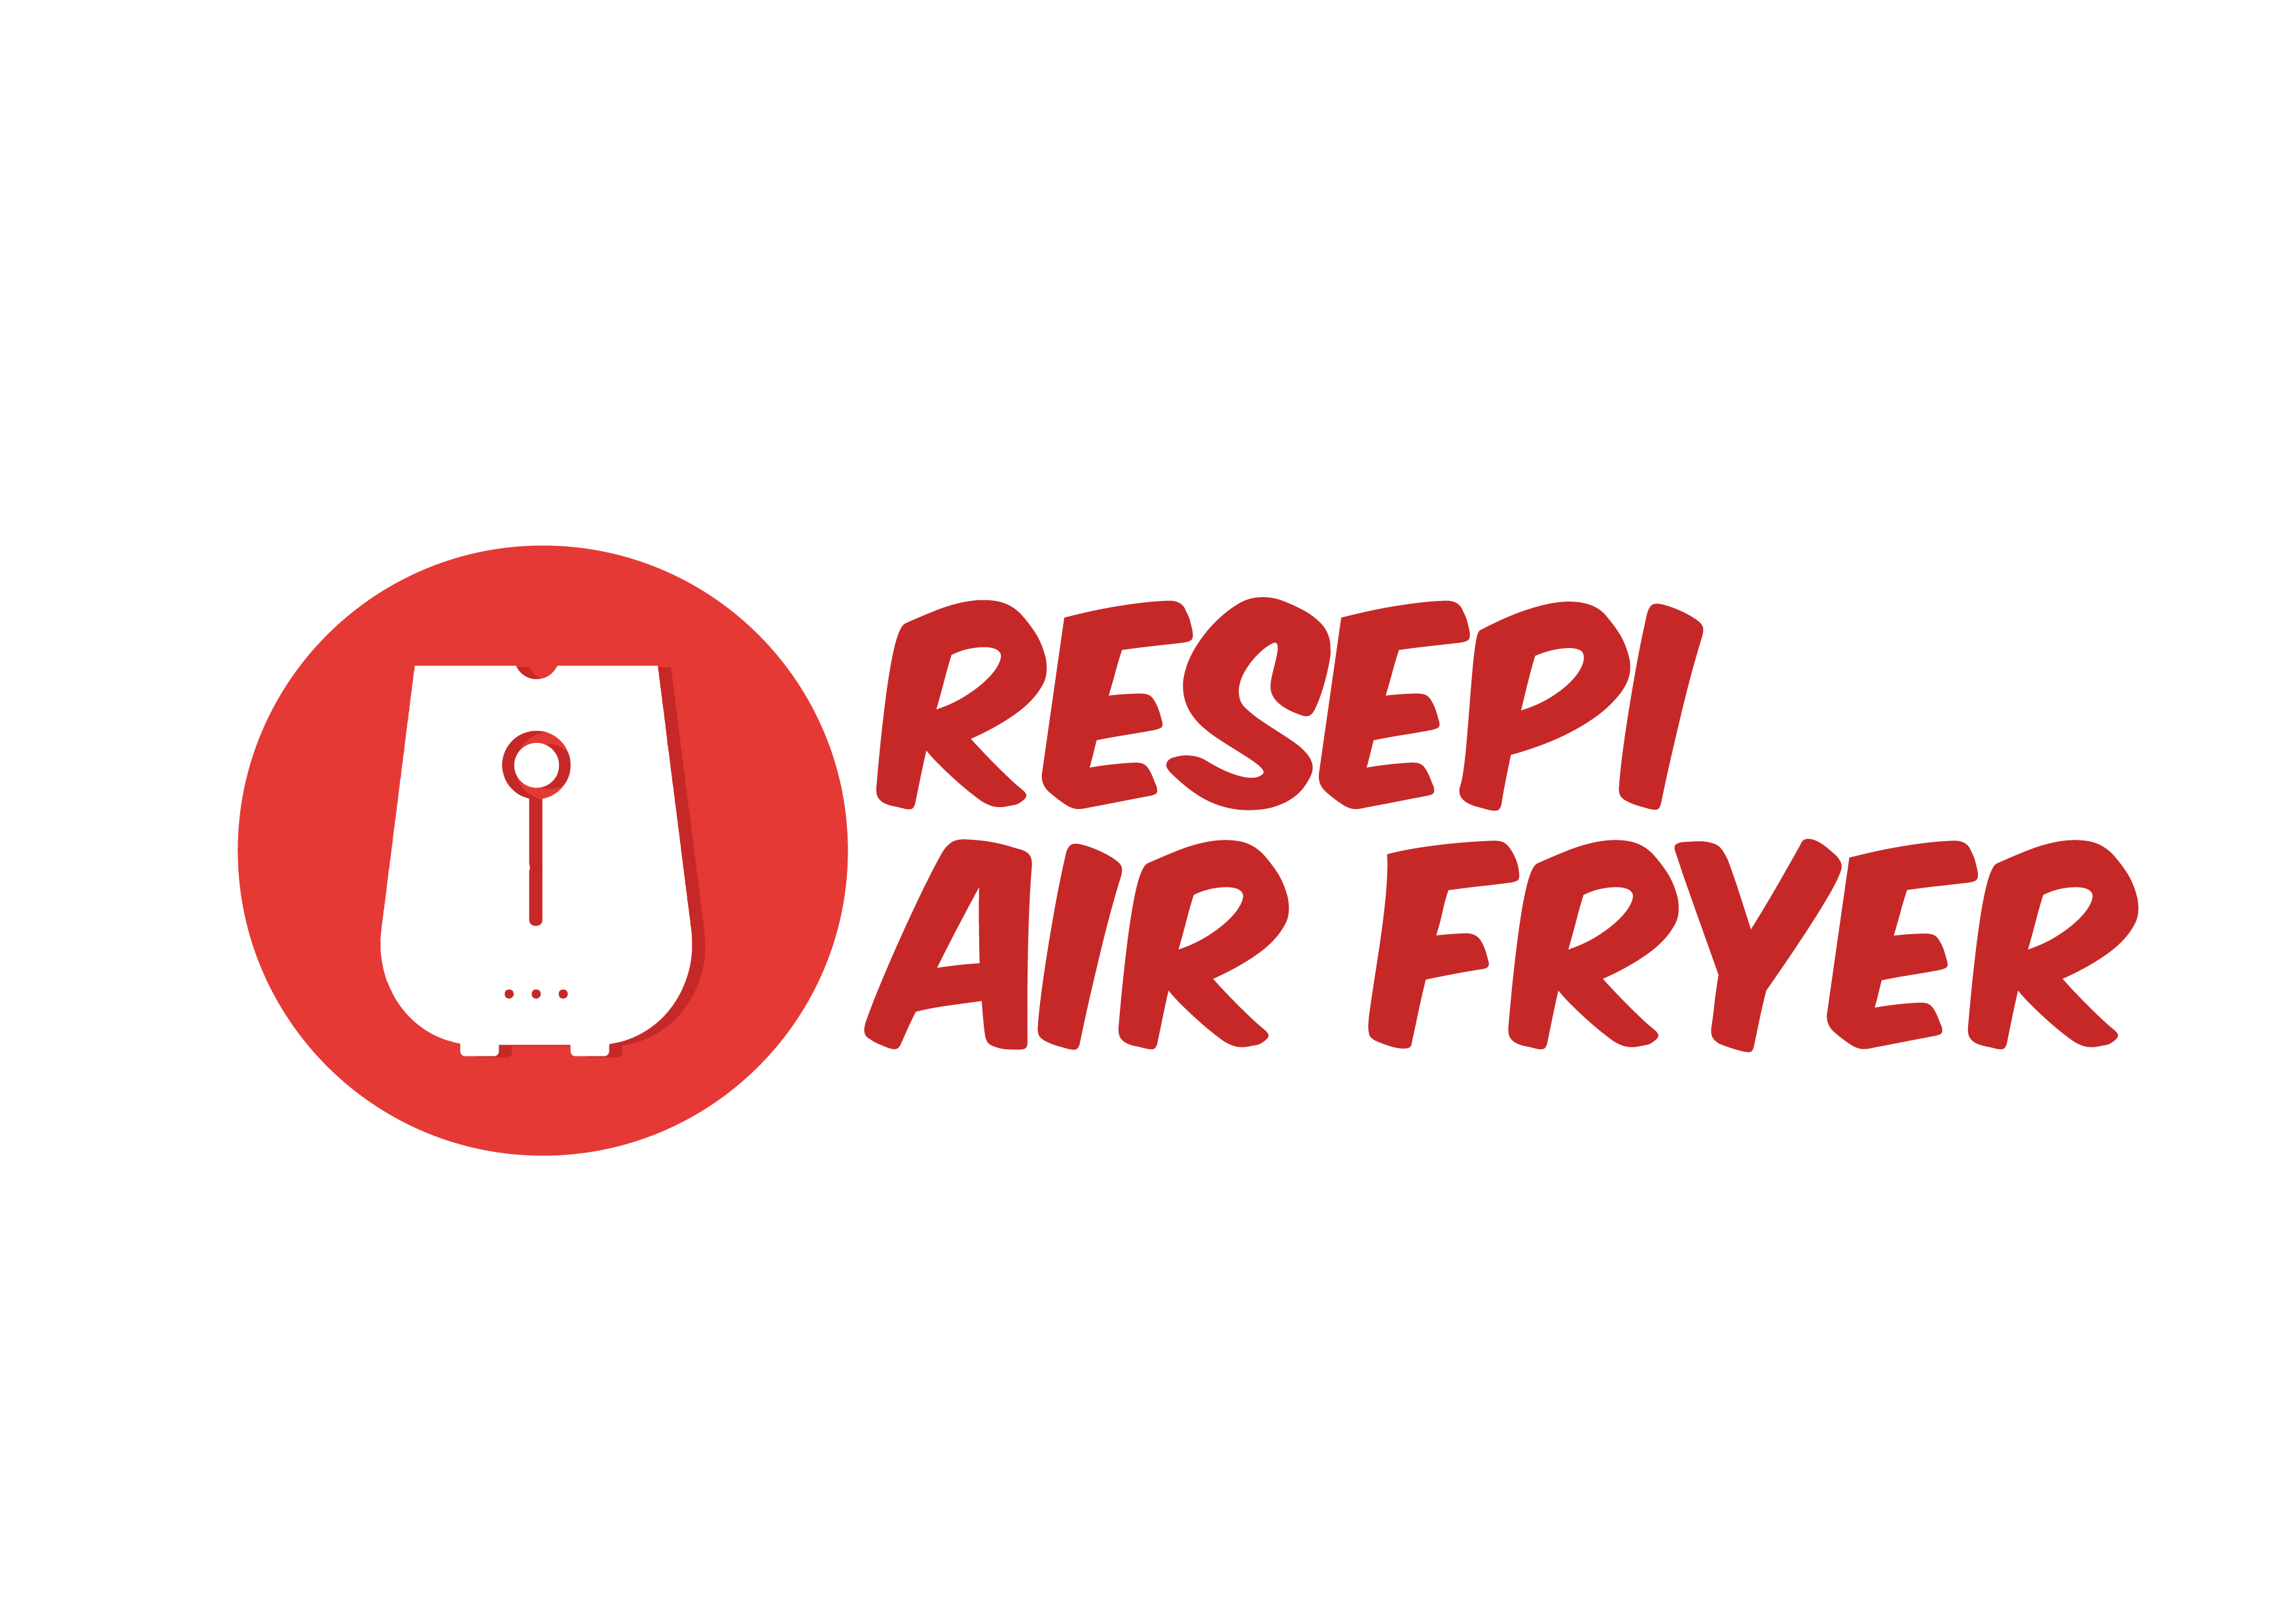 Resepi Air Fryer